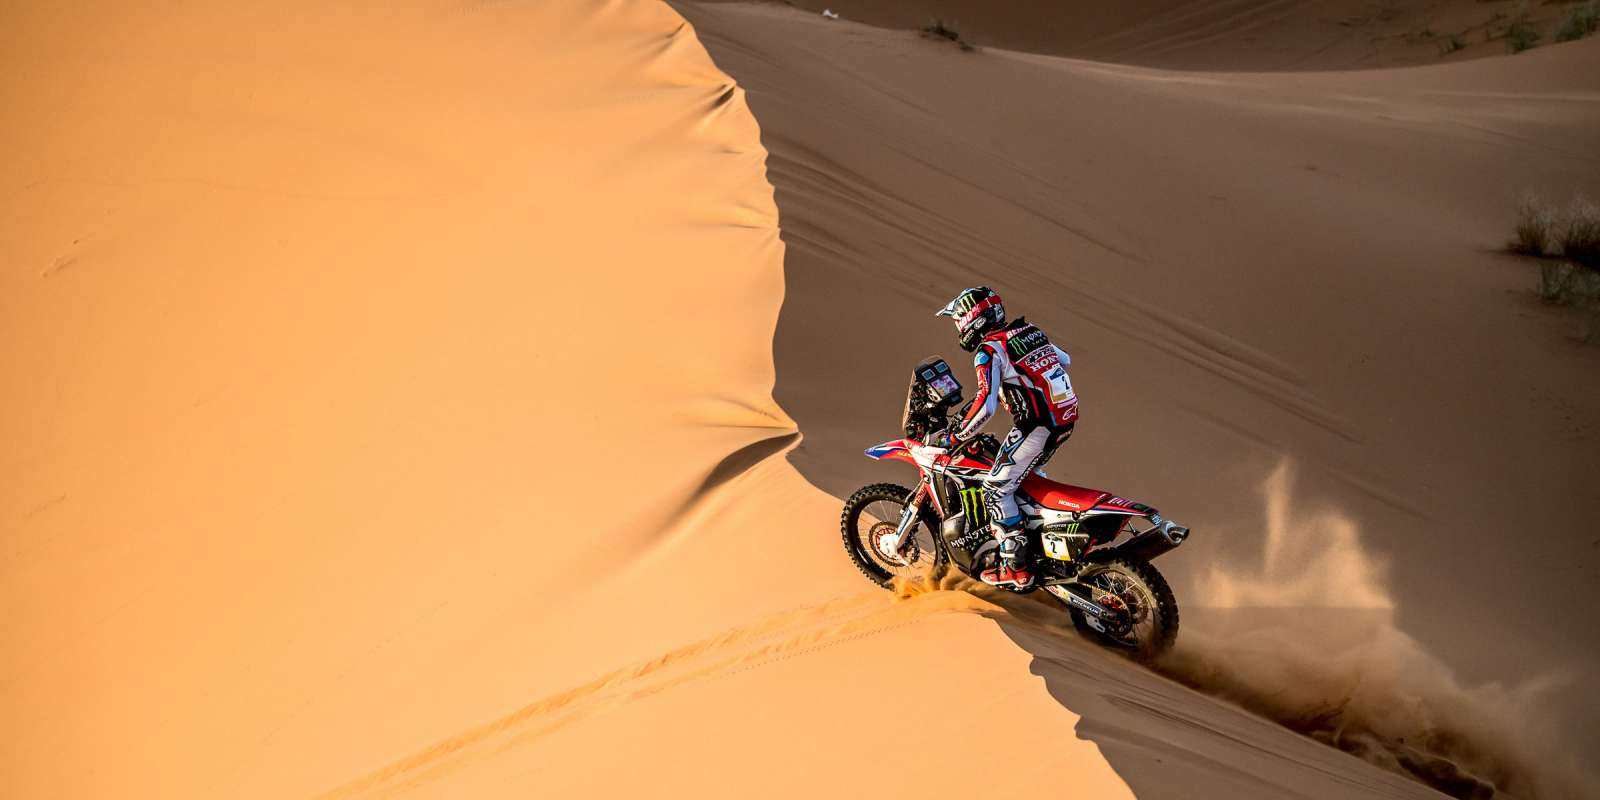 Kevin Benavides at the 2018 Merzouga Rally